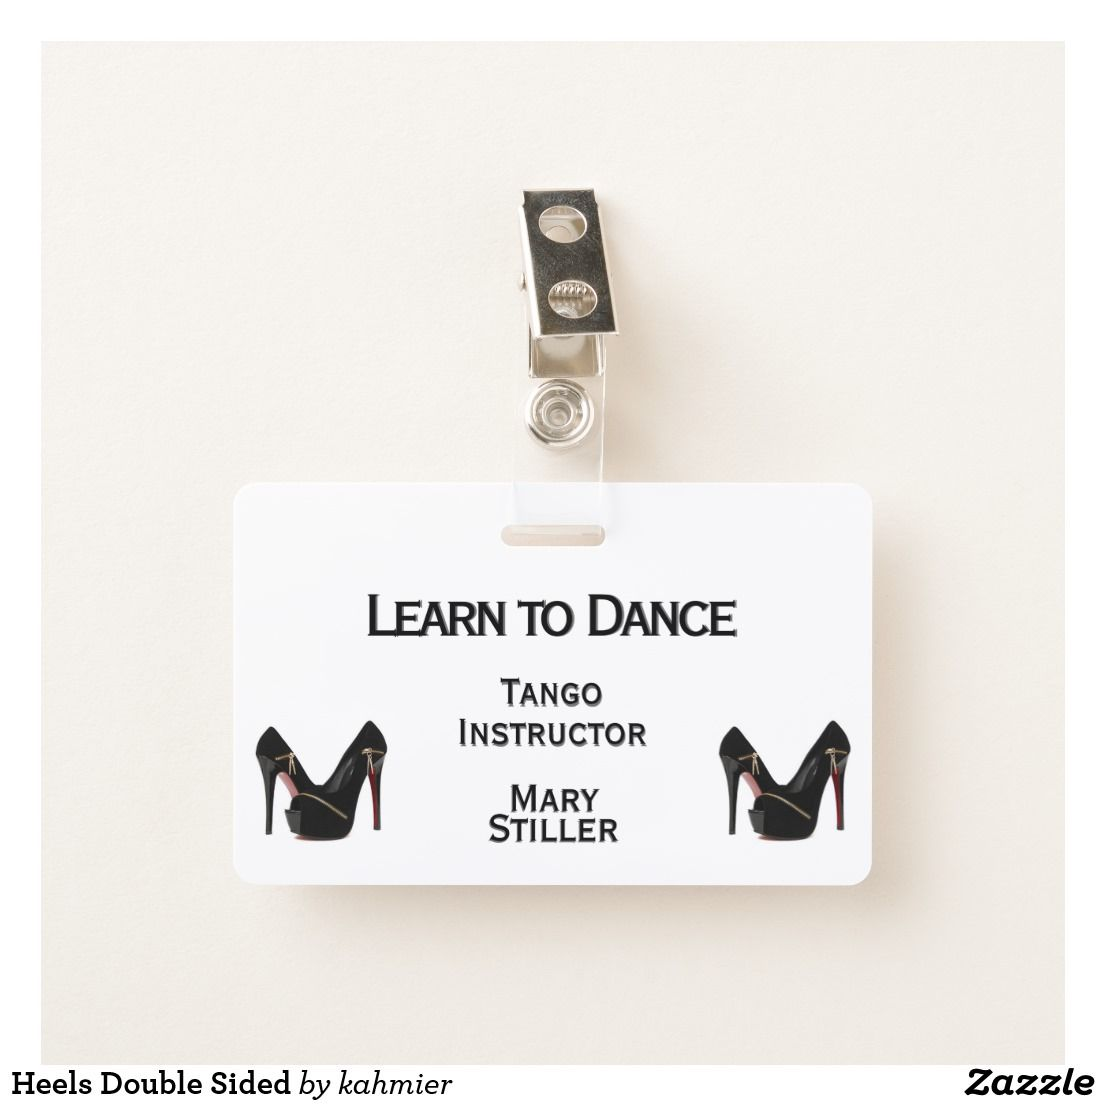 Heels Double Sided Badge